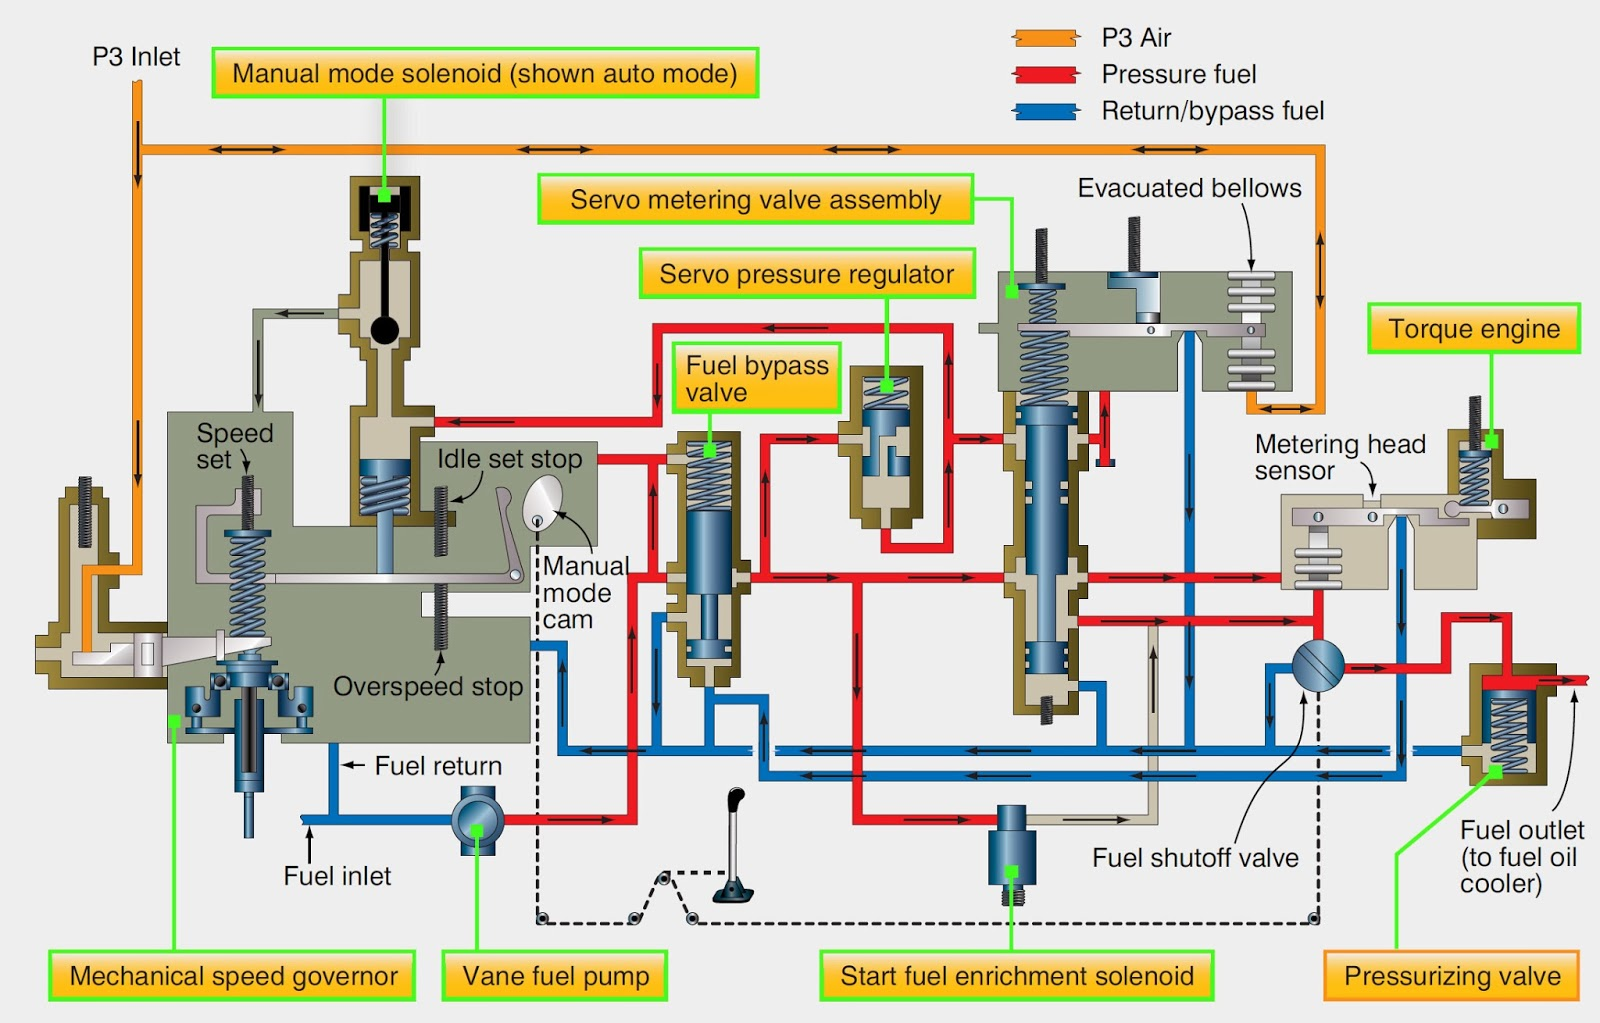 Aircraft Systems Turbine Engine Fuel System General